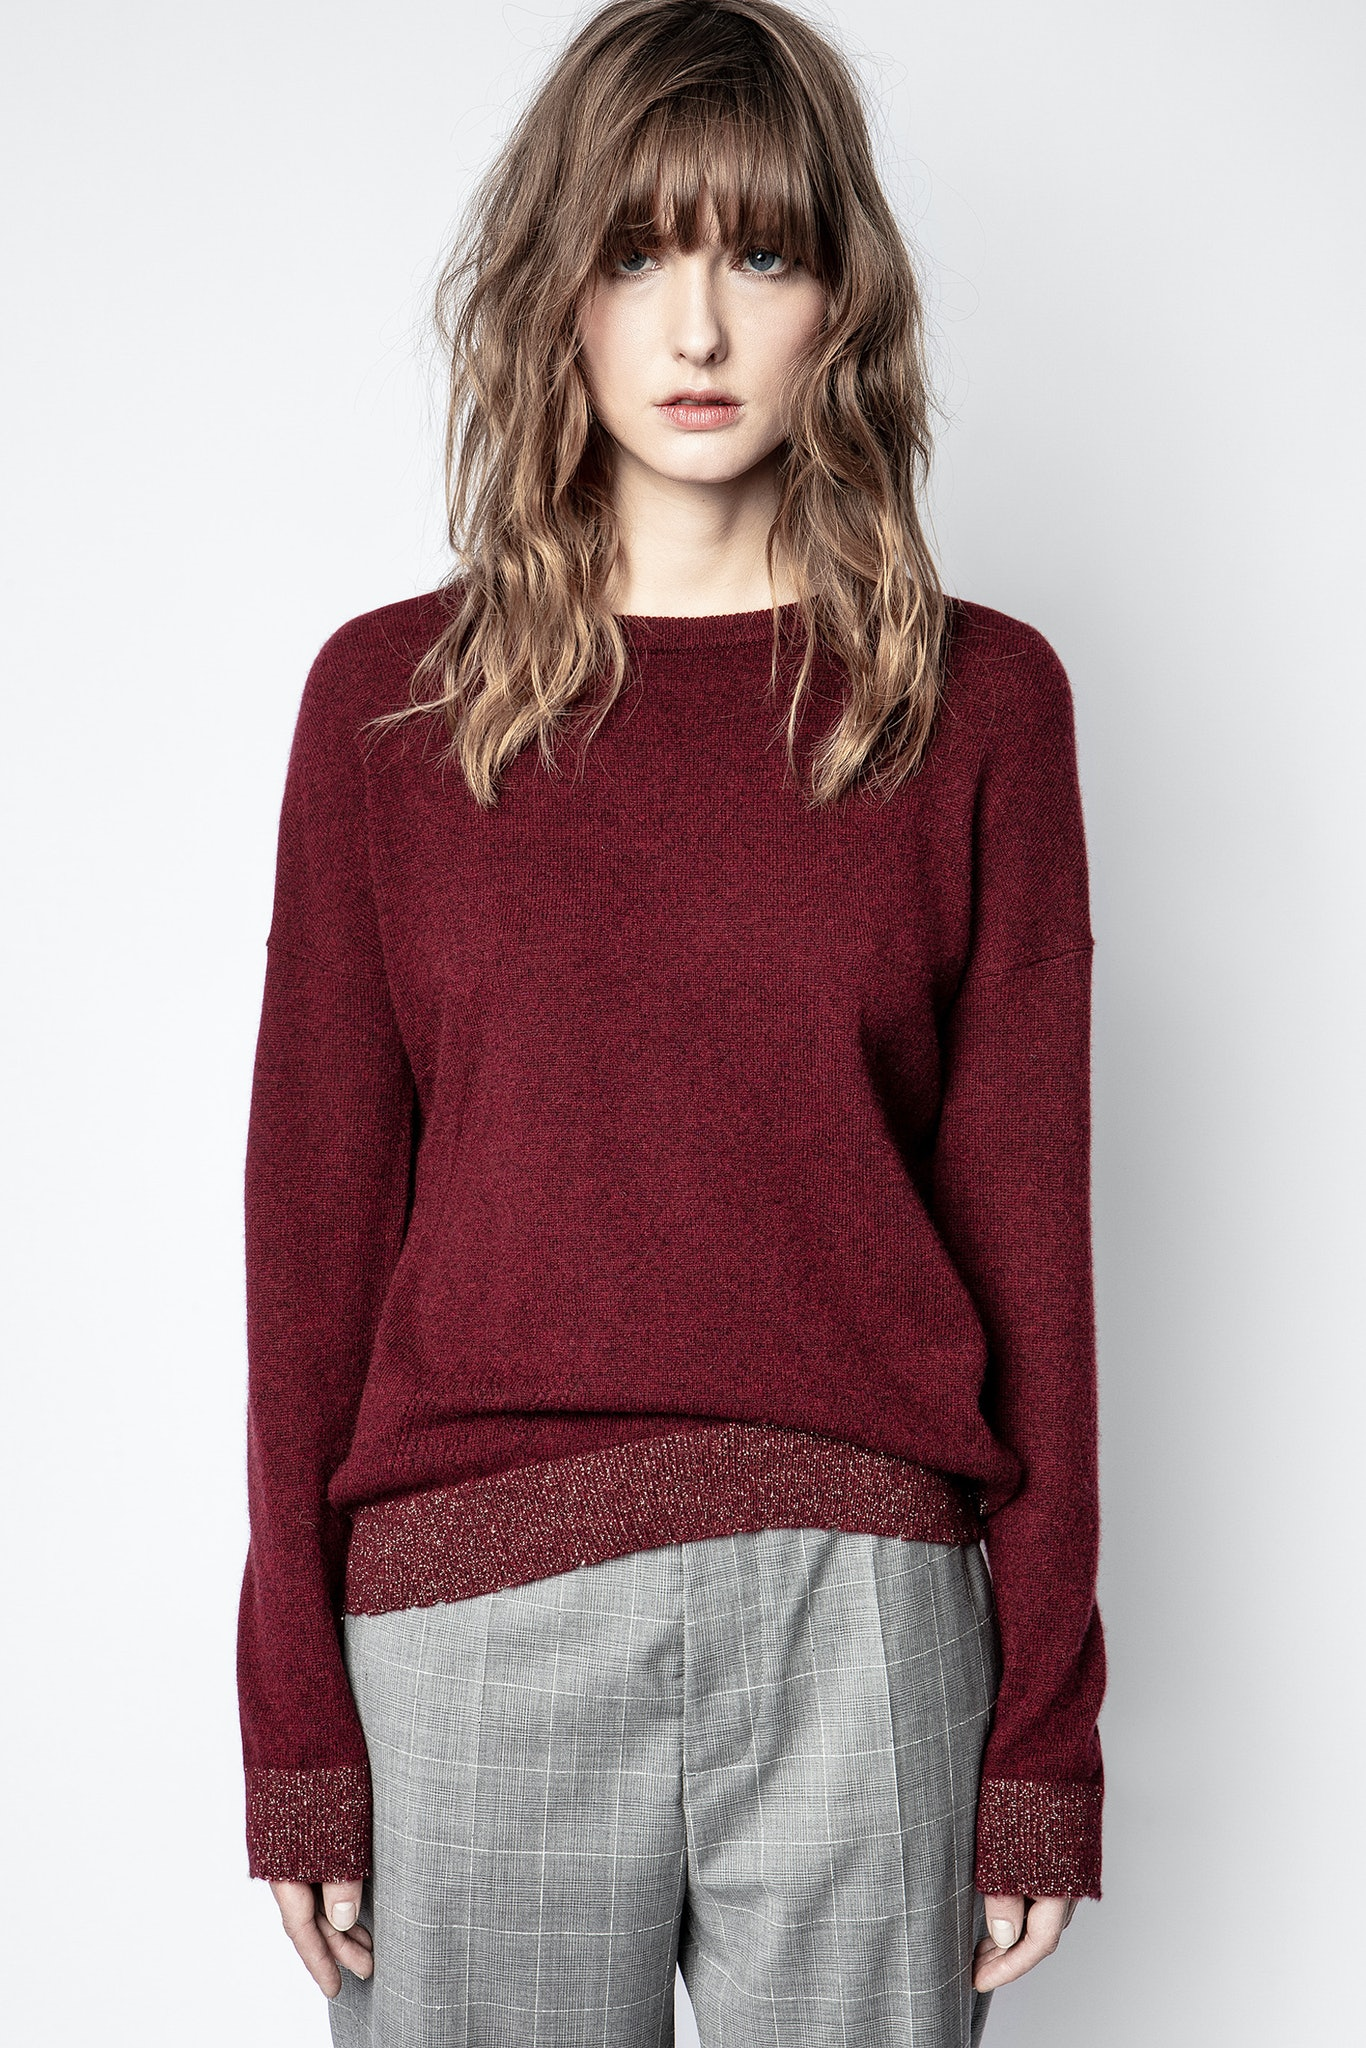 Cici Patch Lurex Cachemire Sweater